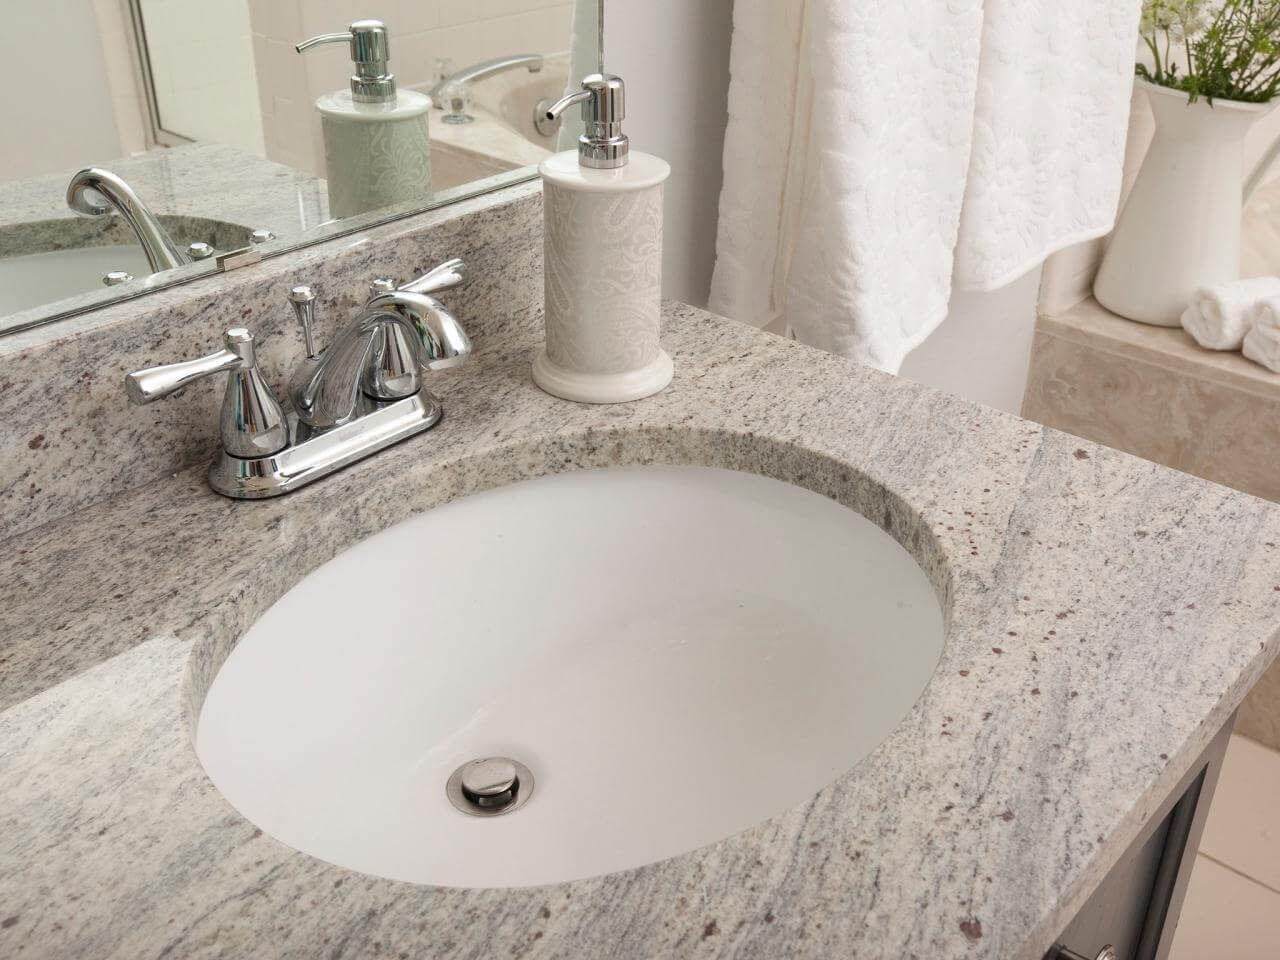 How To Install An Undermount Sink And A Granite Tile Countertop Granite Tile Countertops Tile Countertops Countertops